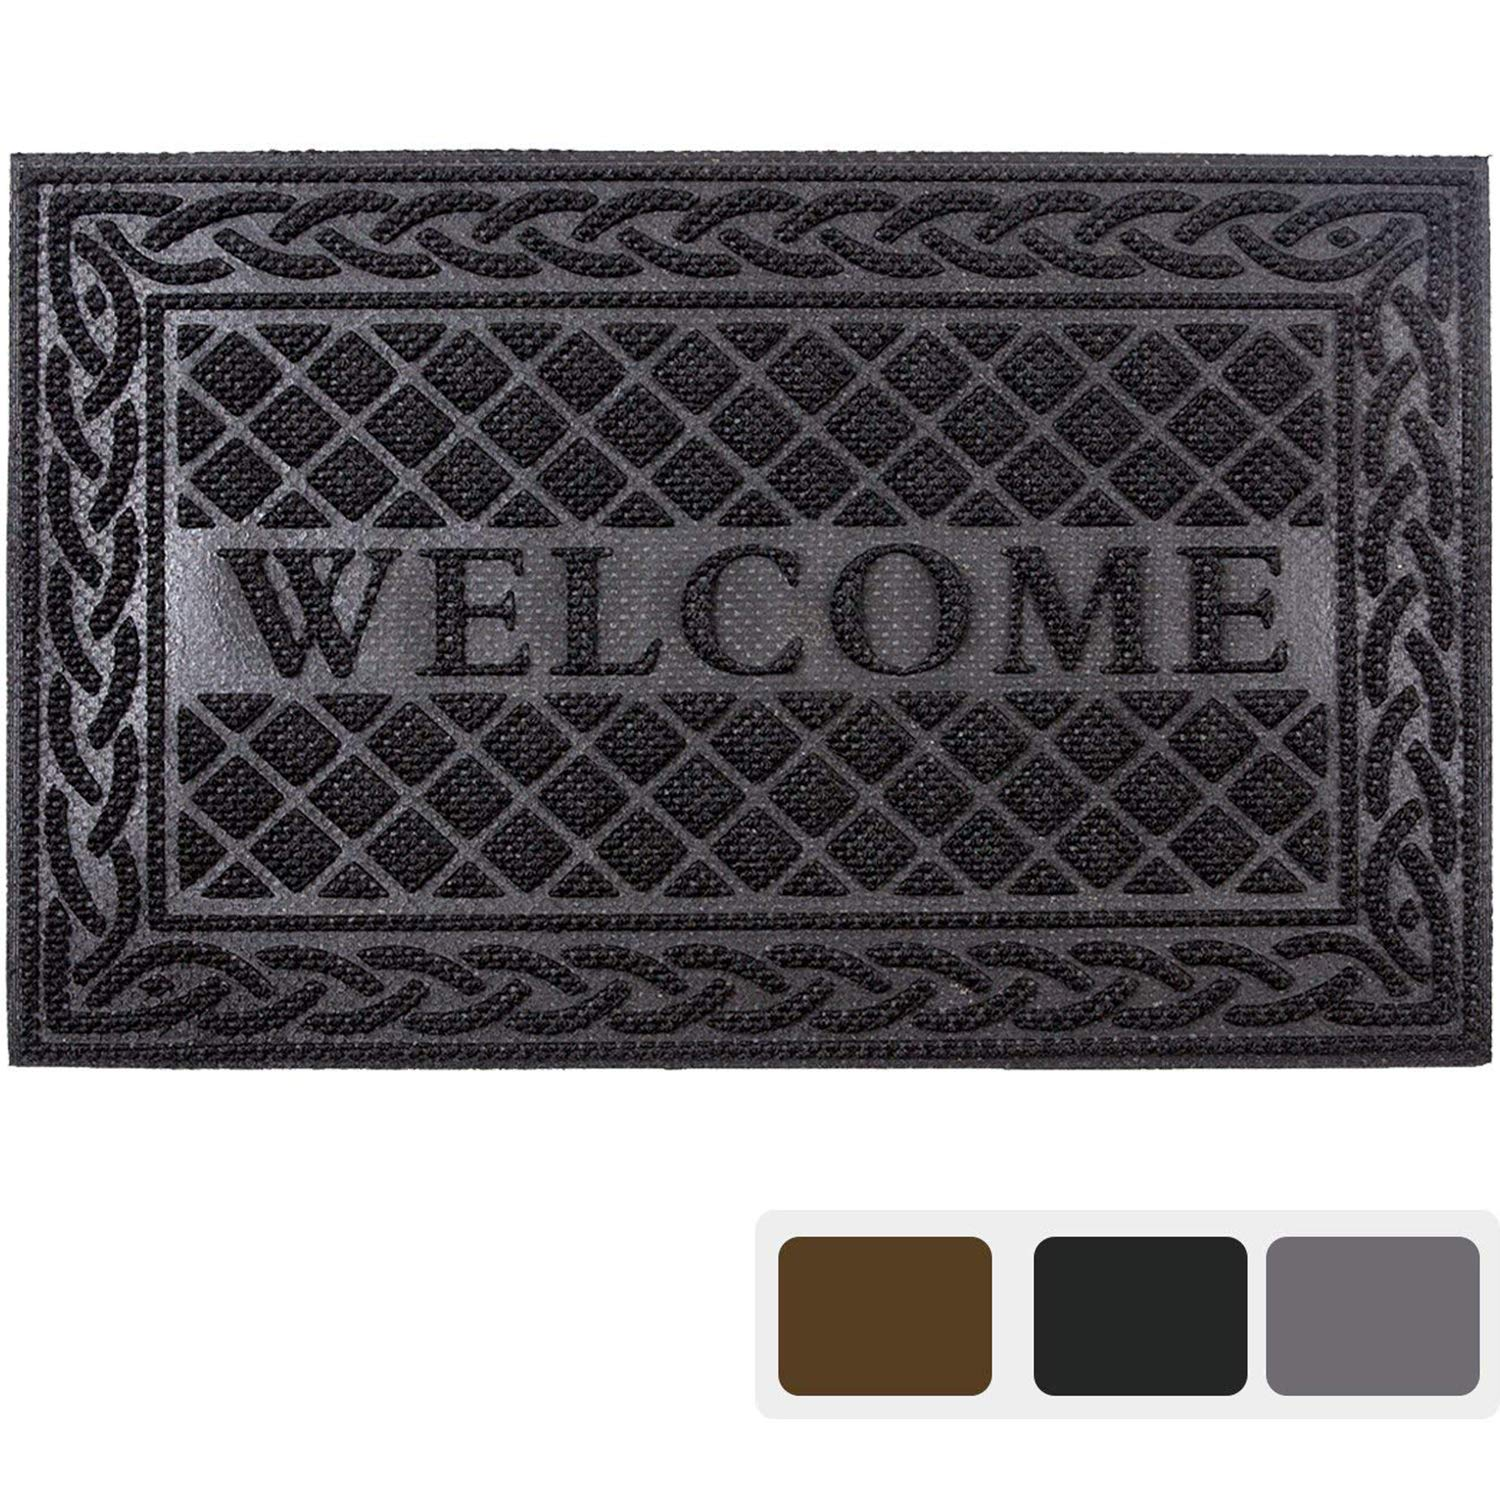 entrance door mat 24 x 36 inch large non slip welcome. Black Bedroom Furniture Sets. Home Design Ideas